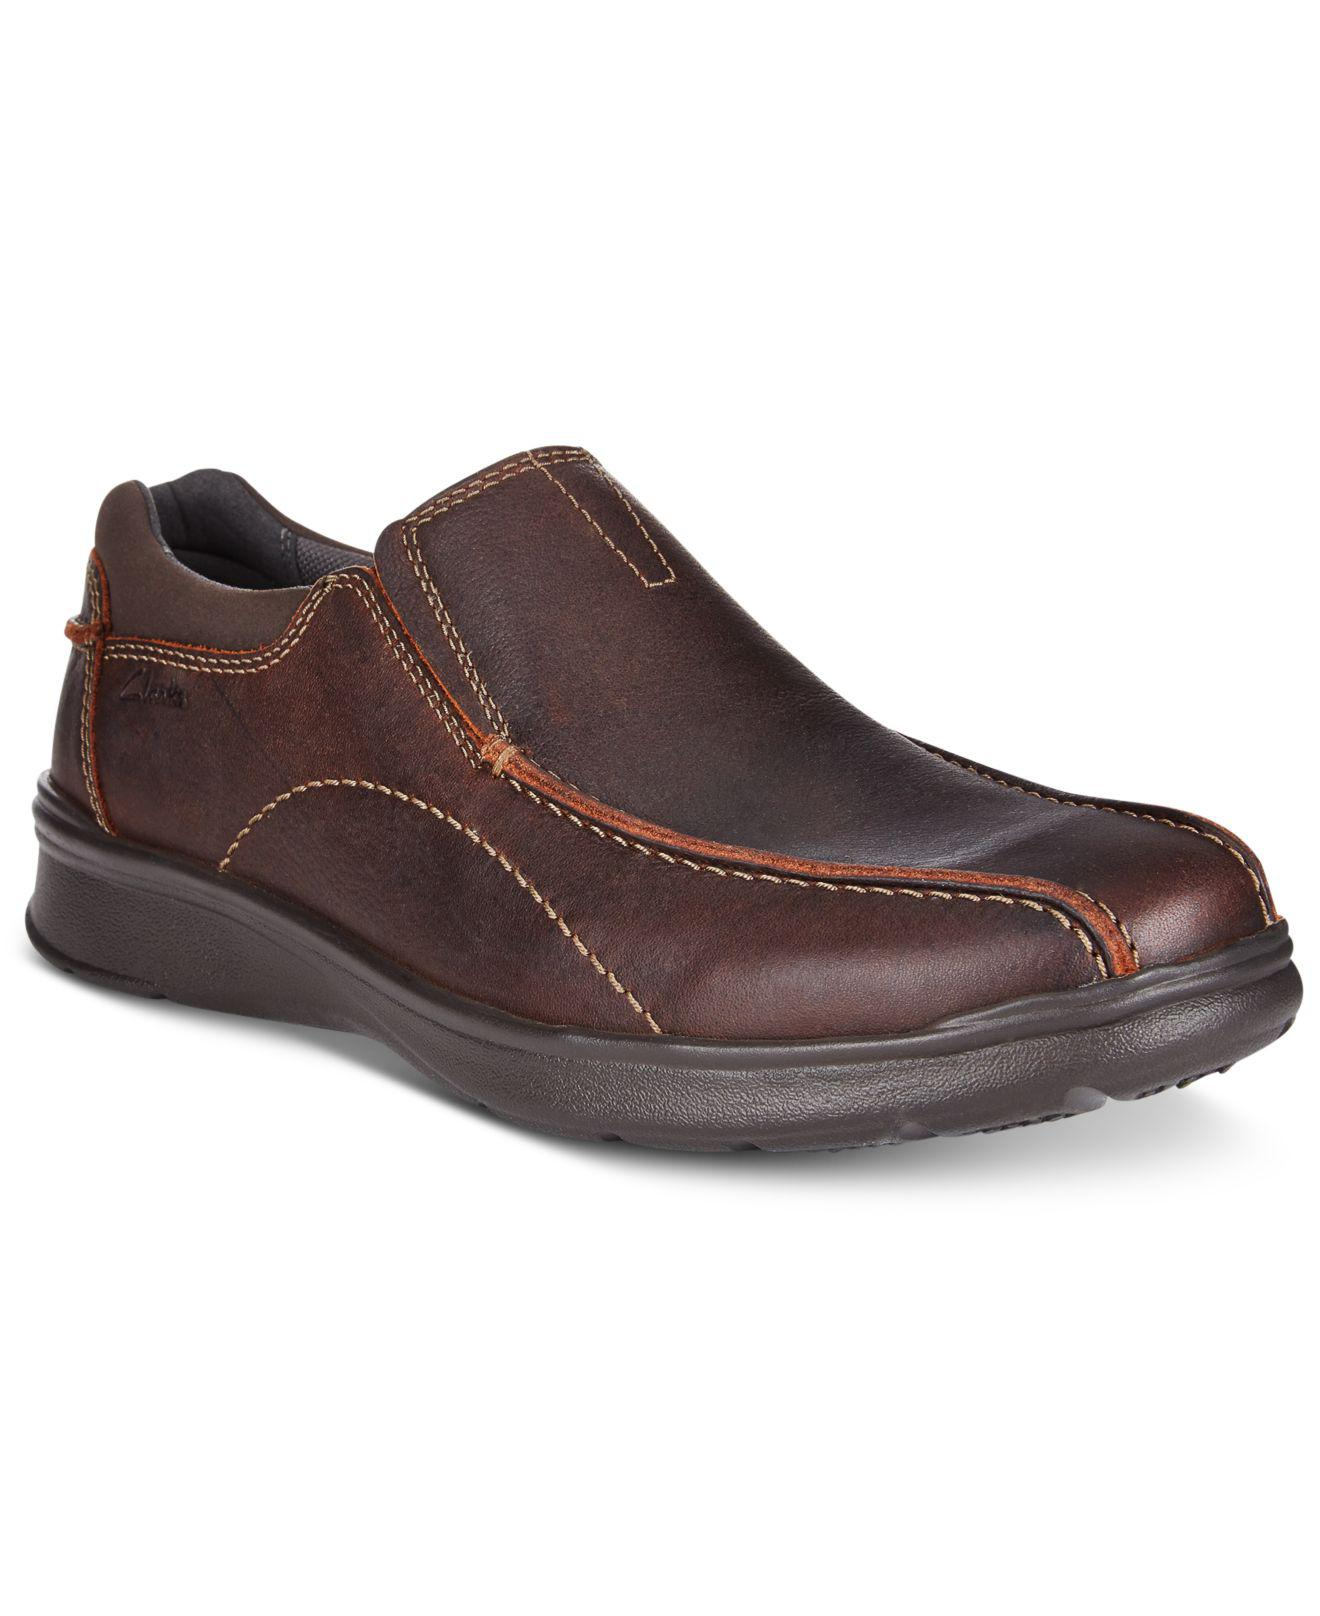 Watch - Clarks Mens Brown Leather Slip On Casual Shoe-52220 video